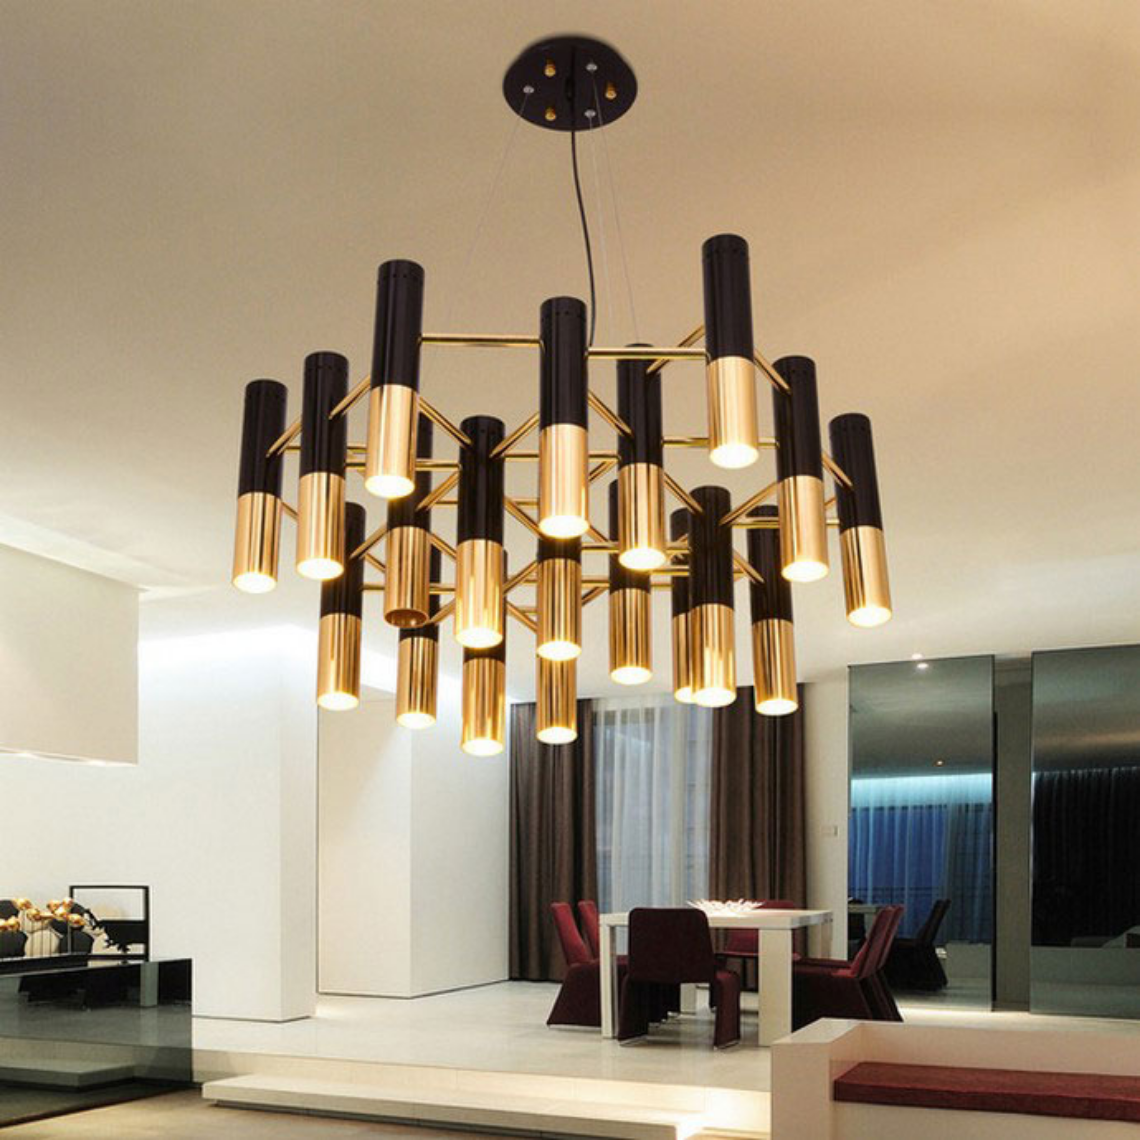 Light Up Your World With These Lighting Ideas lighting ideas Light Up Your World With These Lighting Ideas 5 11